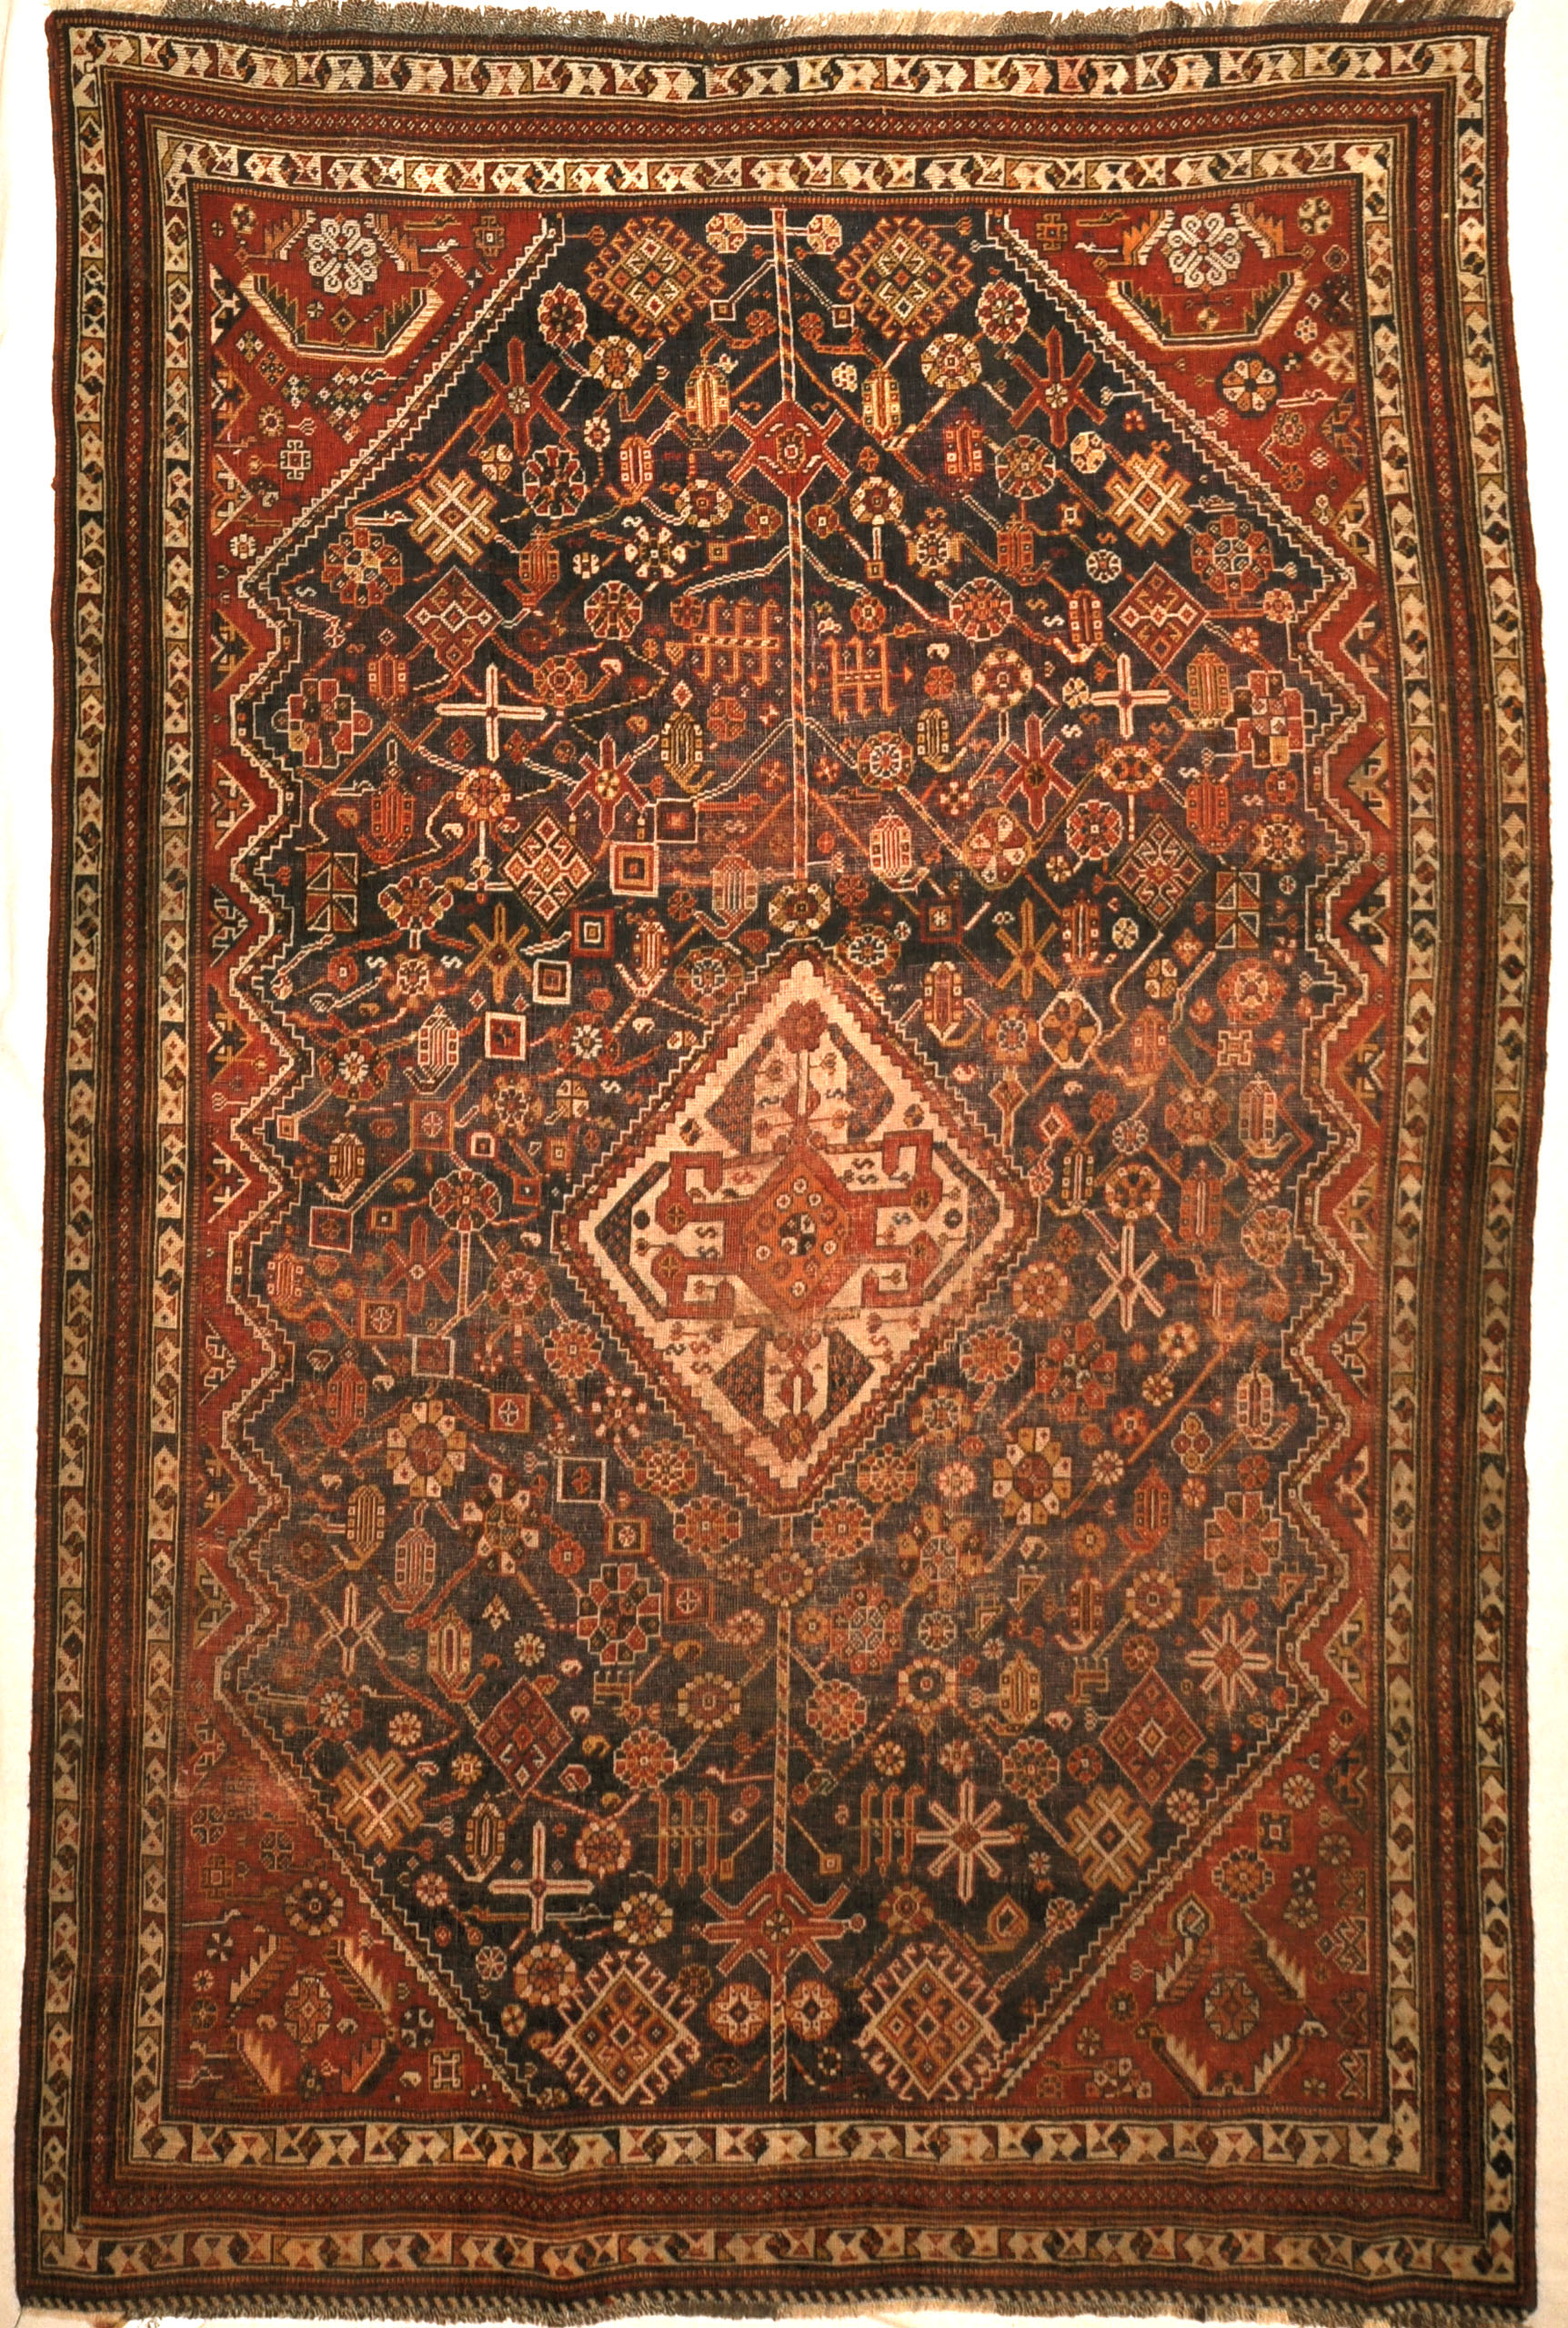 Antique Qashqai Rug. A piece of genuine antique authentic woven carpet art sold by the Santa Barbara Design Center, Rugs and More.